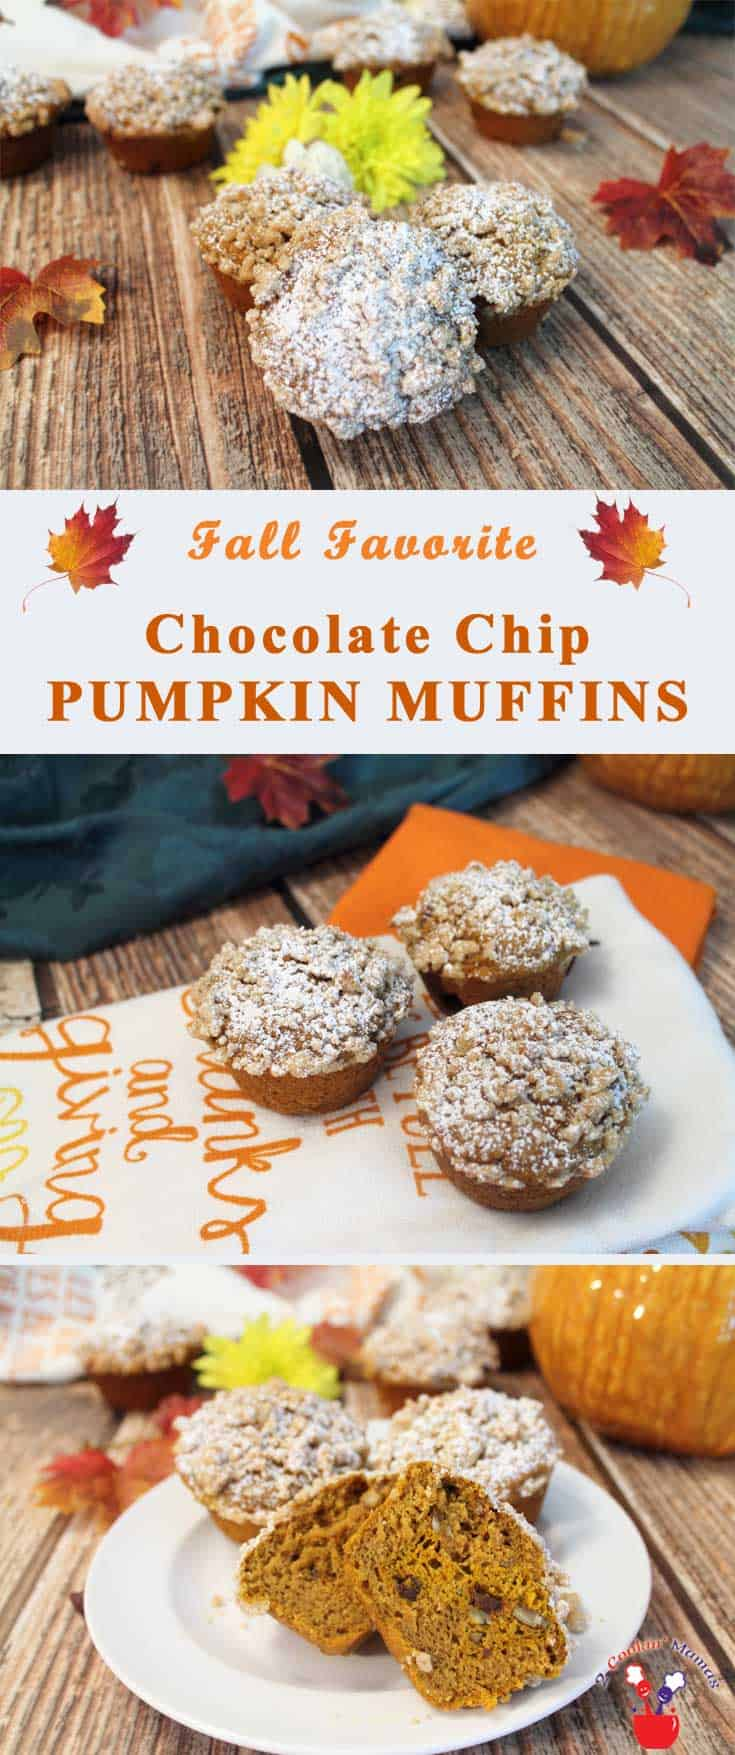 chocolate-chip-pumpkin-muffins-main | 2 Cookin Mamas Nothing says fall like these chocolate chip pumpkin muffins! They are moist, delicious and full of pumpkin flavor with loads of crumbs sprinkled on top. They are even a bit healthier than the norm with less sugar less oil and the addition of dark chocolate chips, nuts and Greek yogurt. #recipe